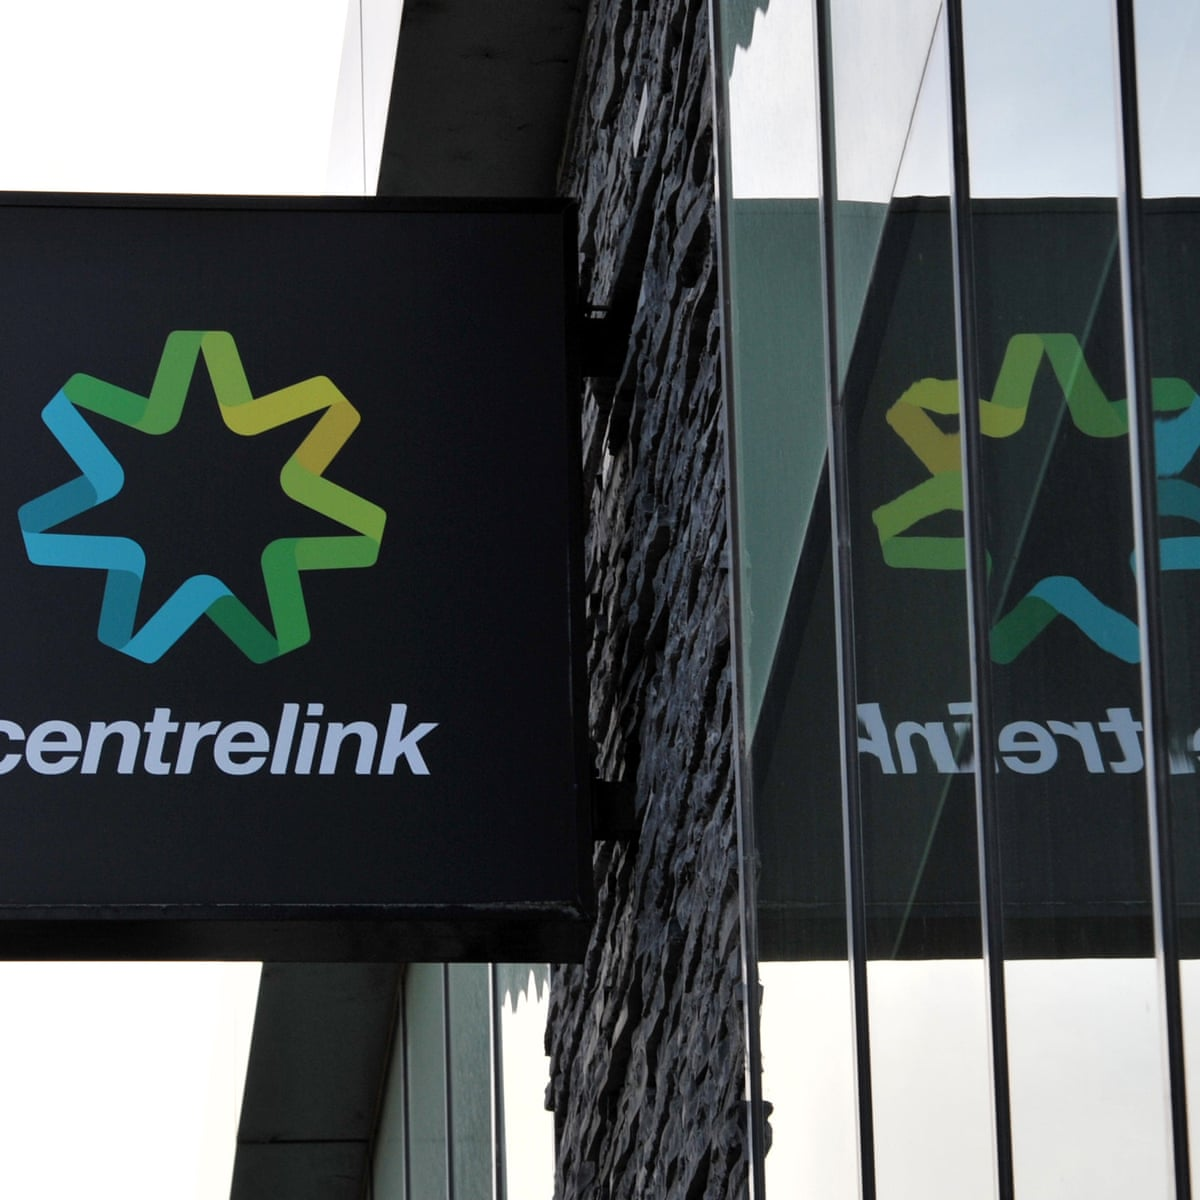 Welfare Recipients Forced To Correct Income To Centrelink 15m Times In One Year Centrelink Debt Recovery The Guardian